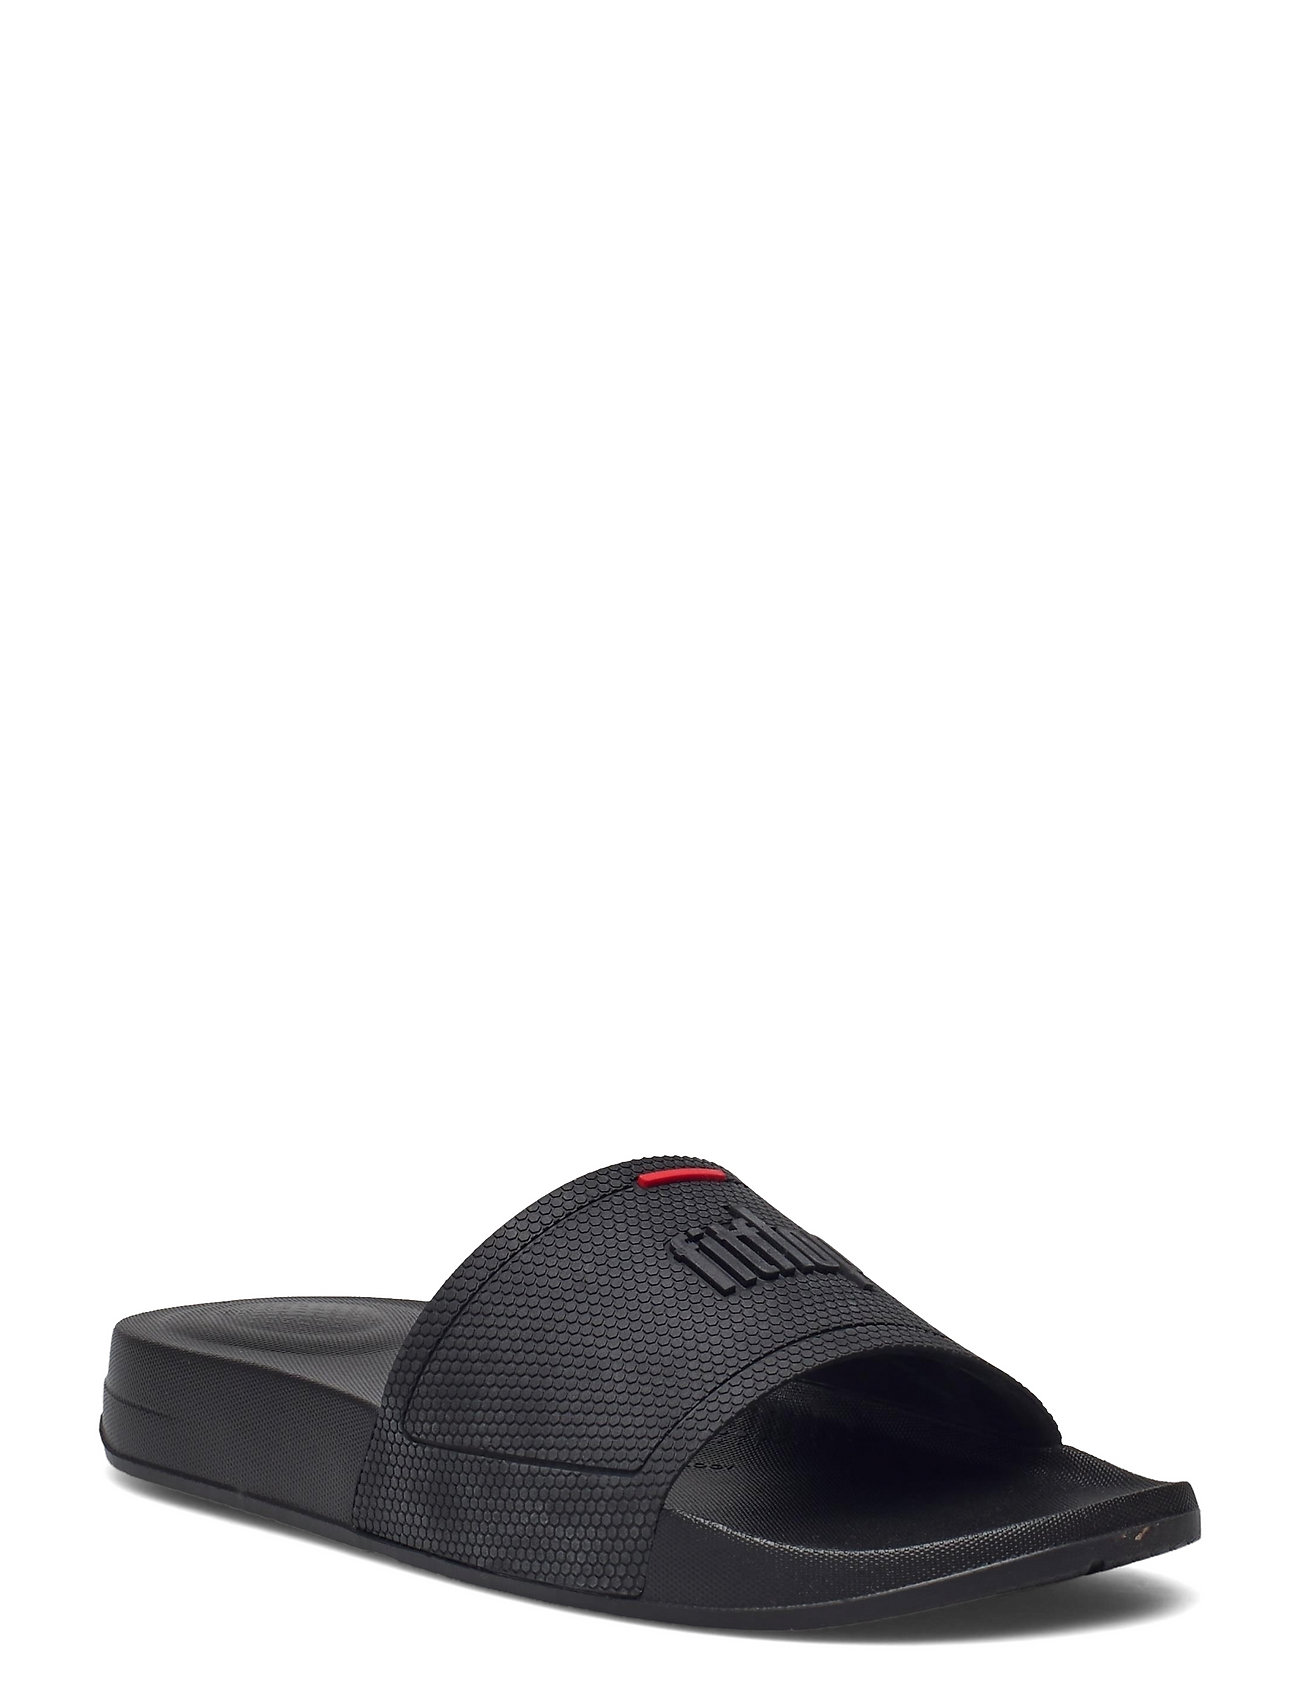 Iqushion Slides Shoes Summer Shoes Pool Sliders Sort FitFlop